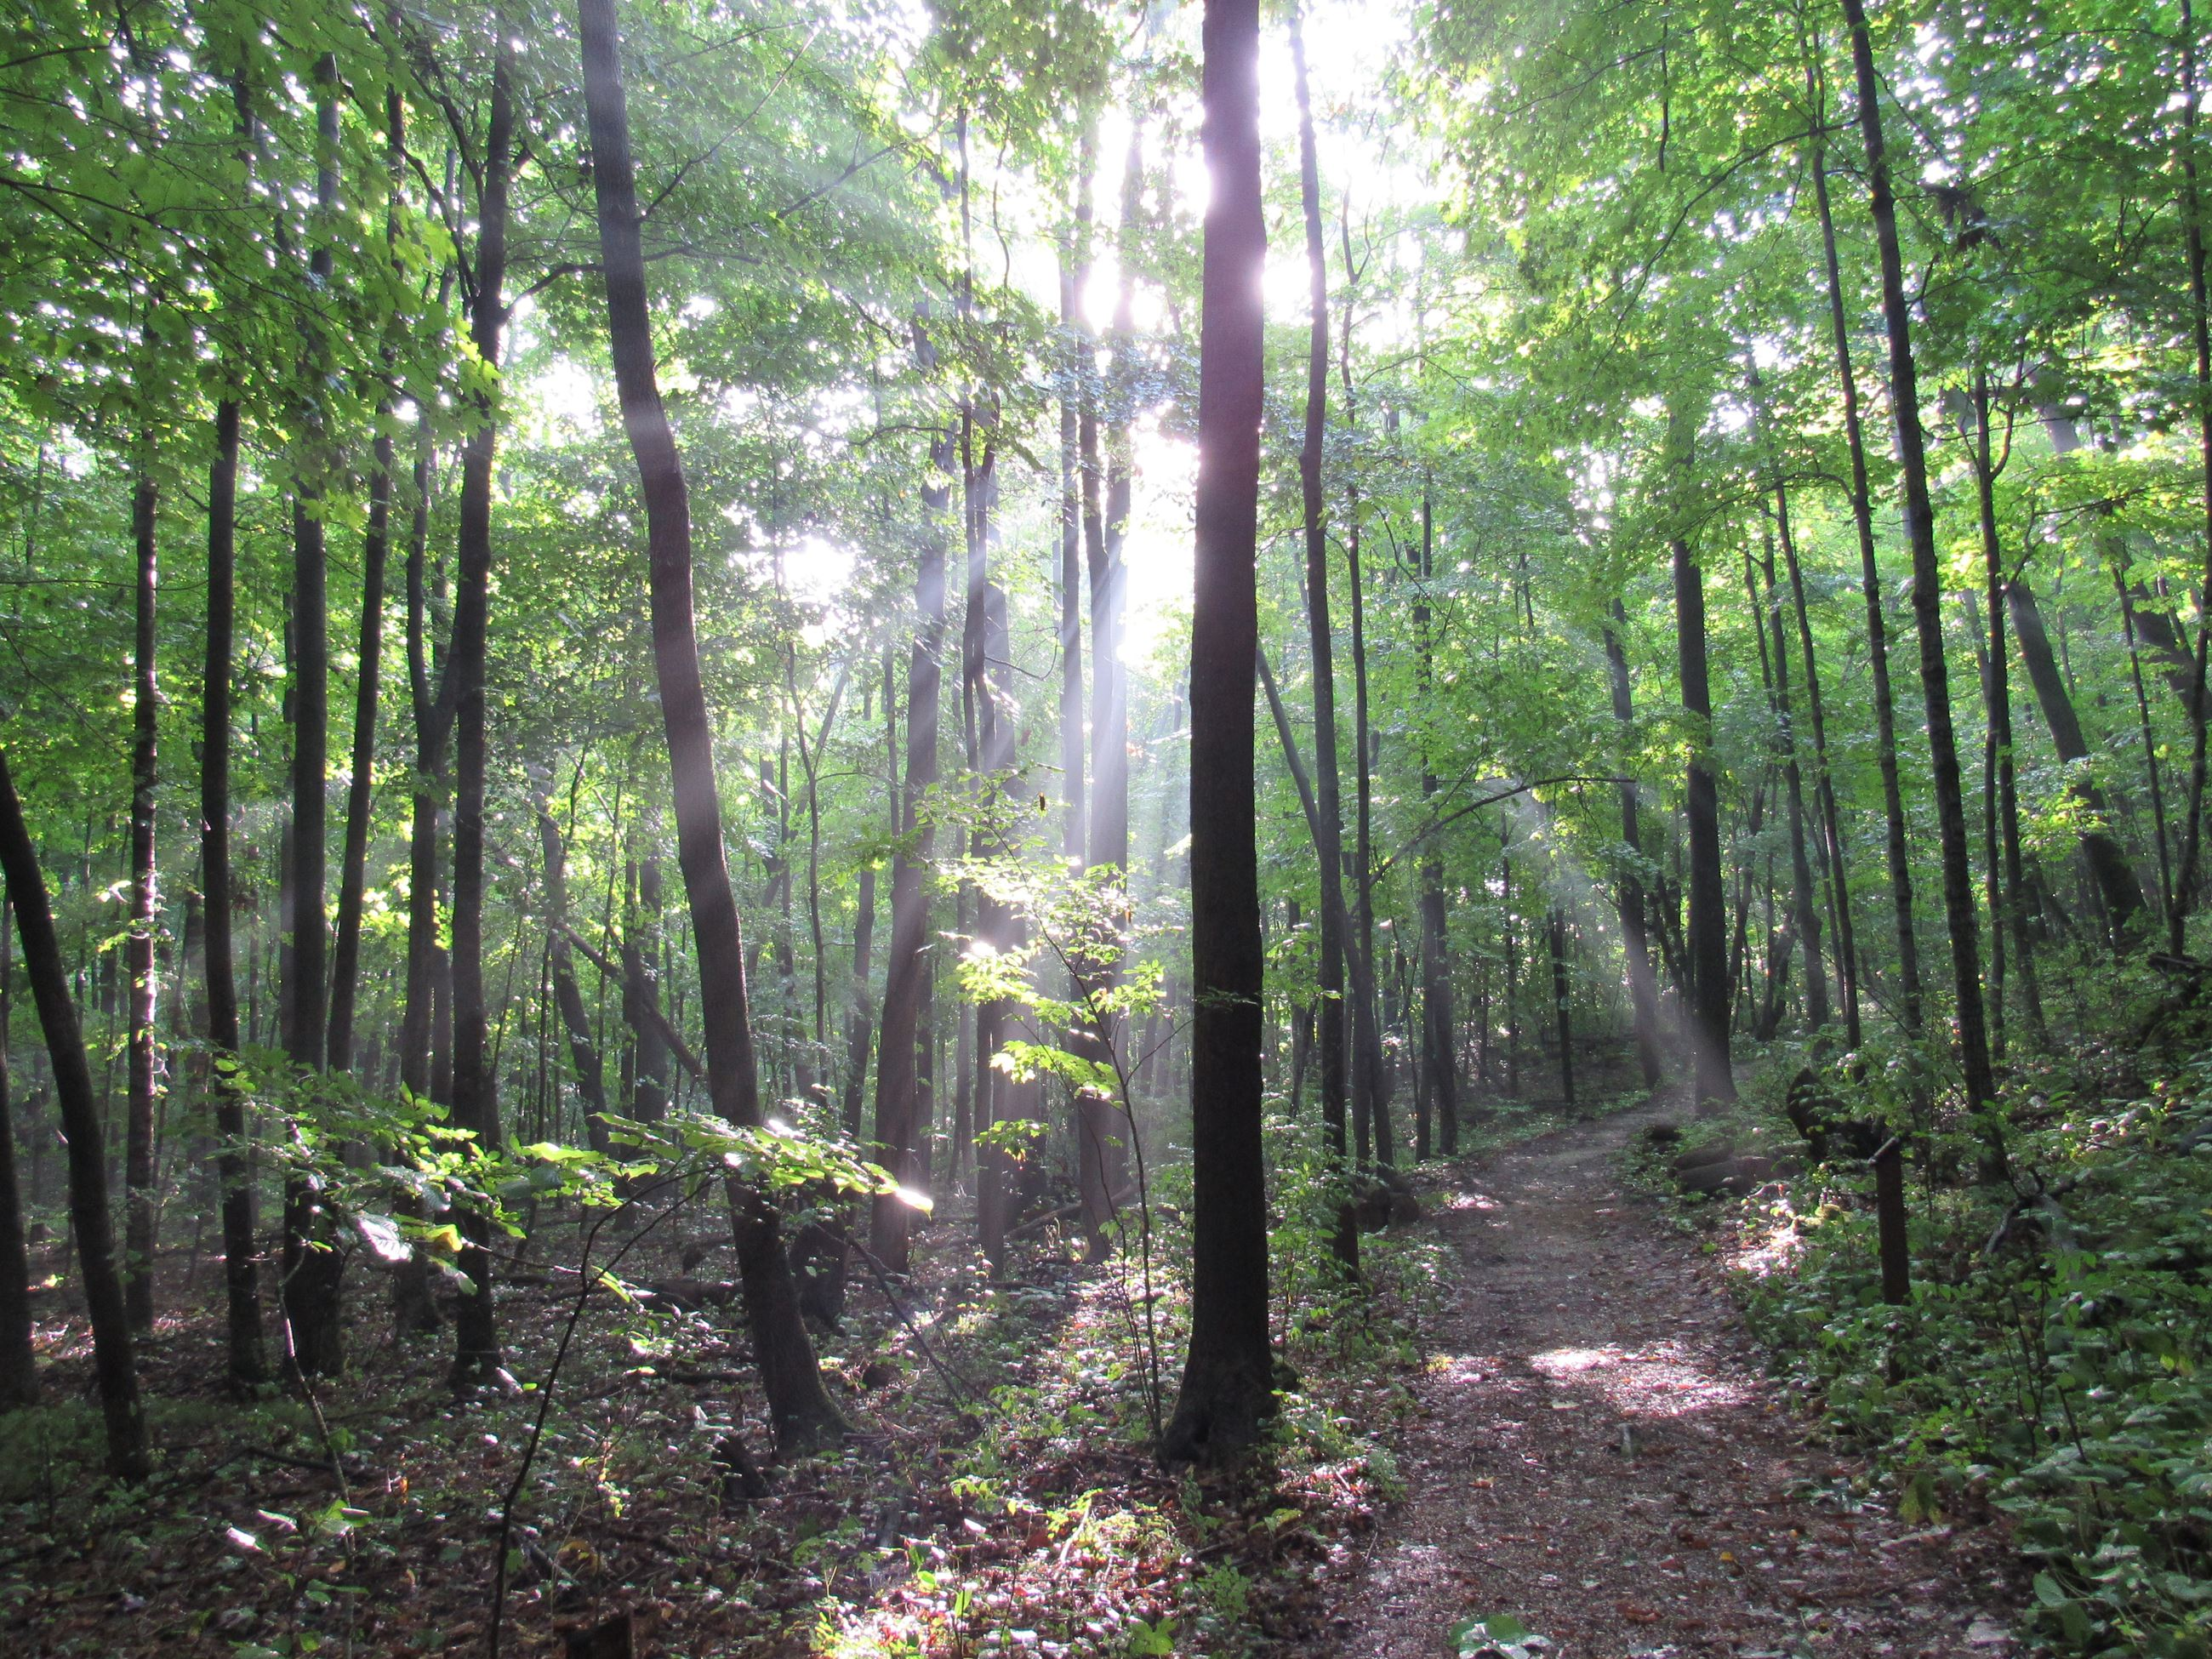 A woodland trail surrounded by trees with sunlight shining through.